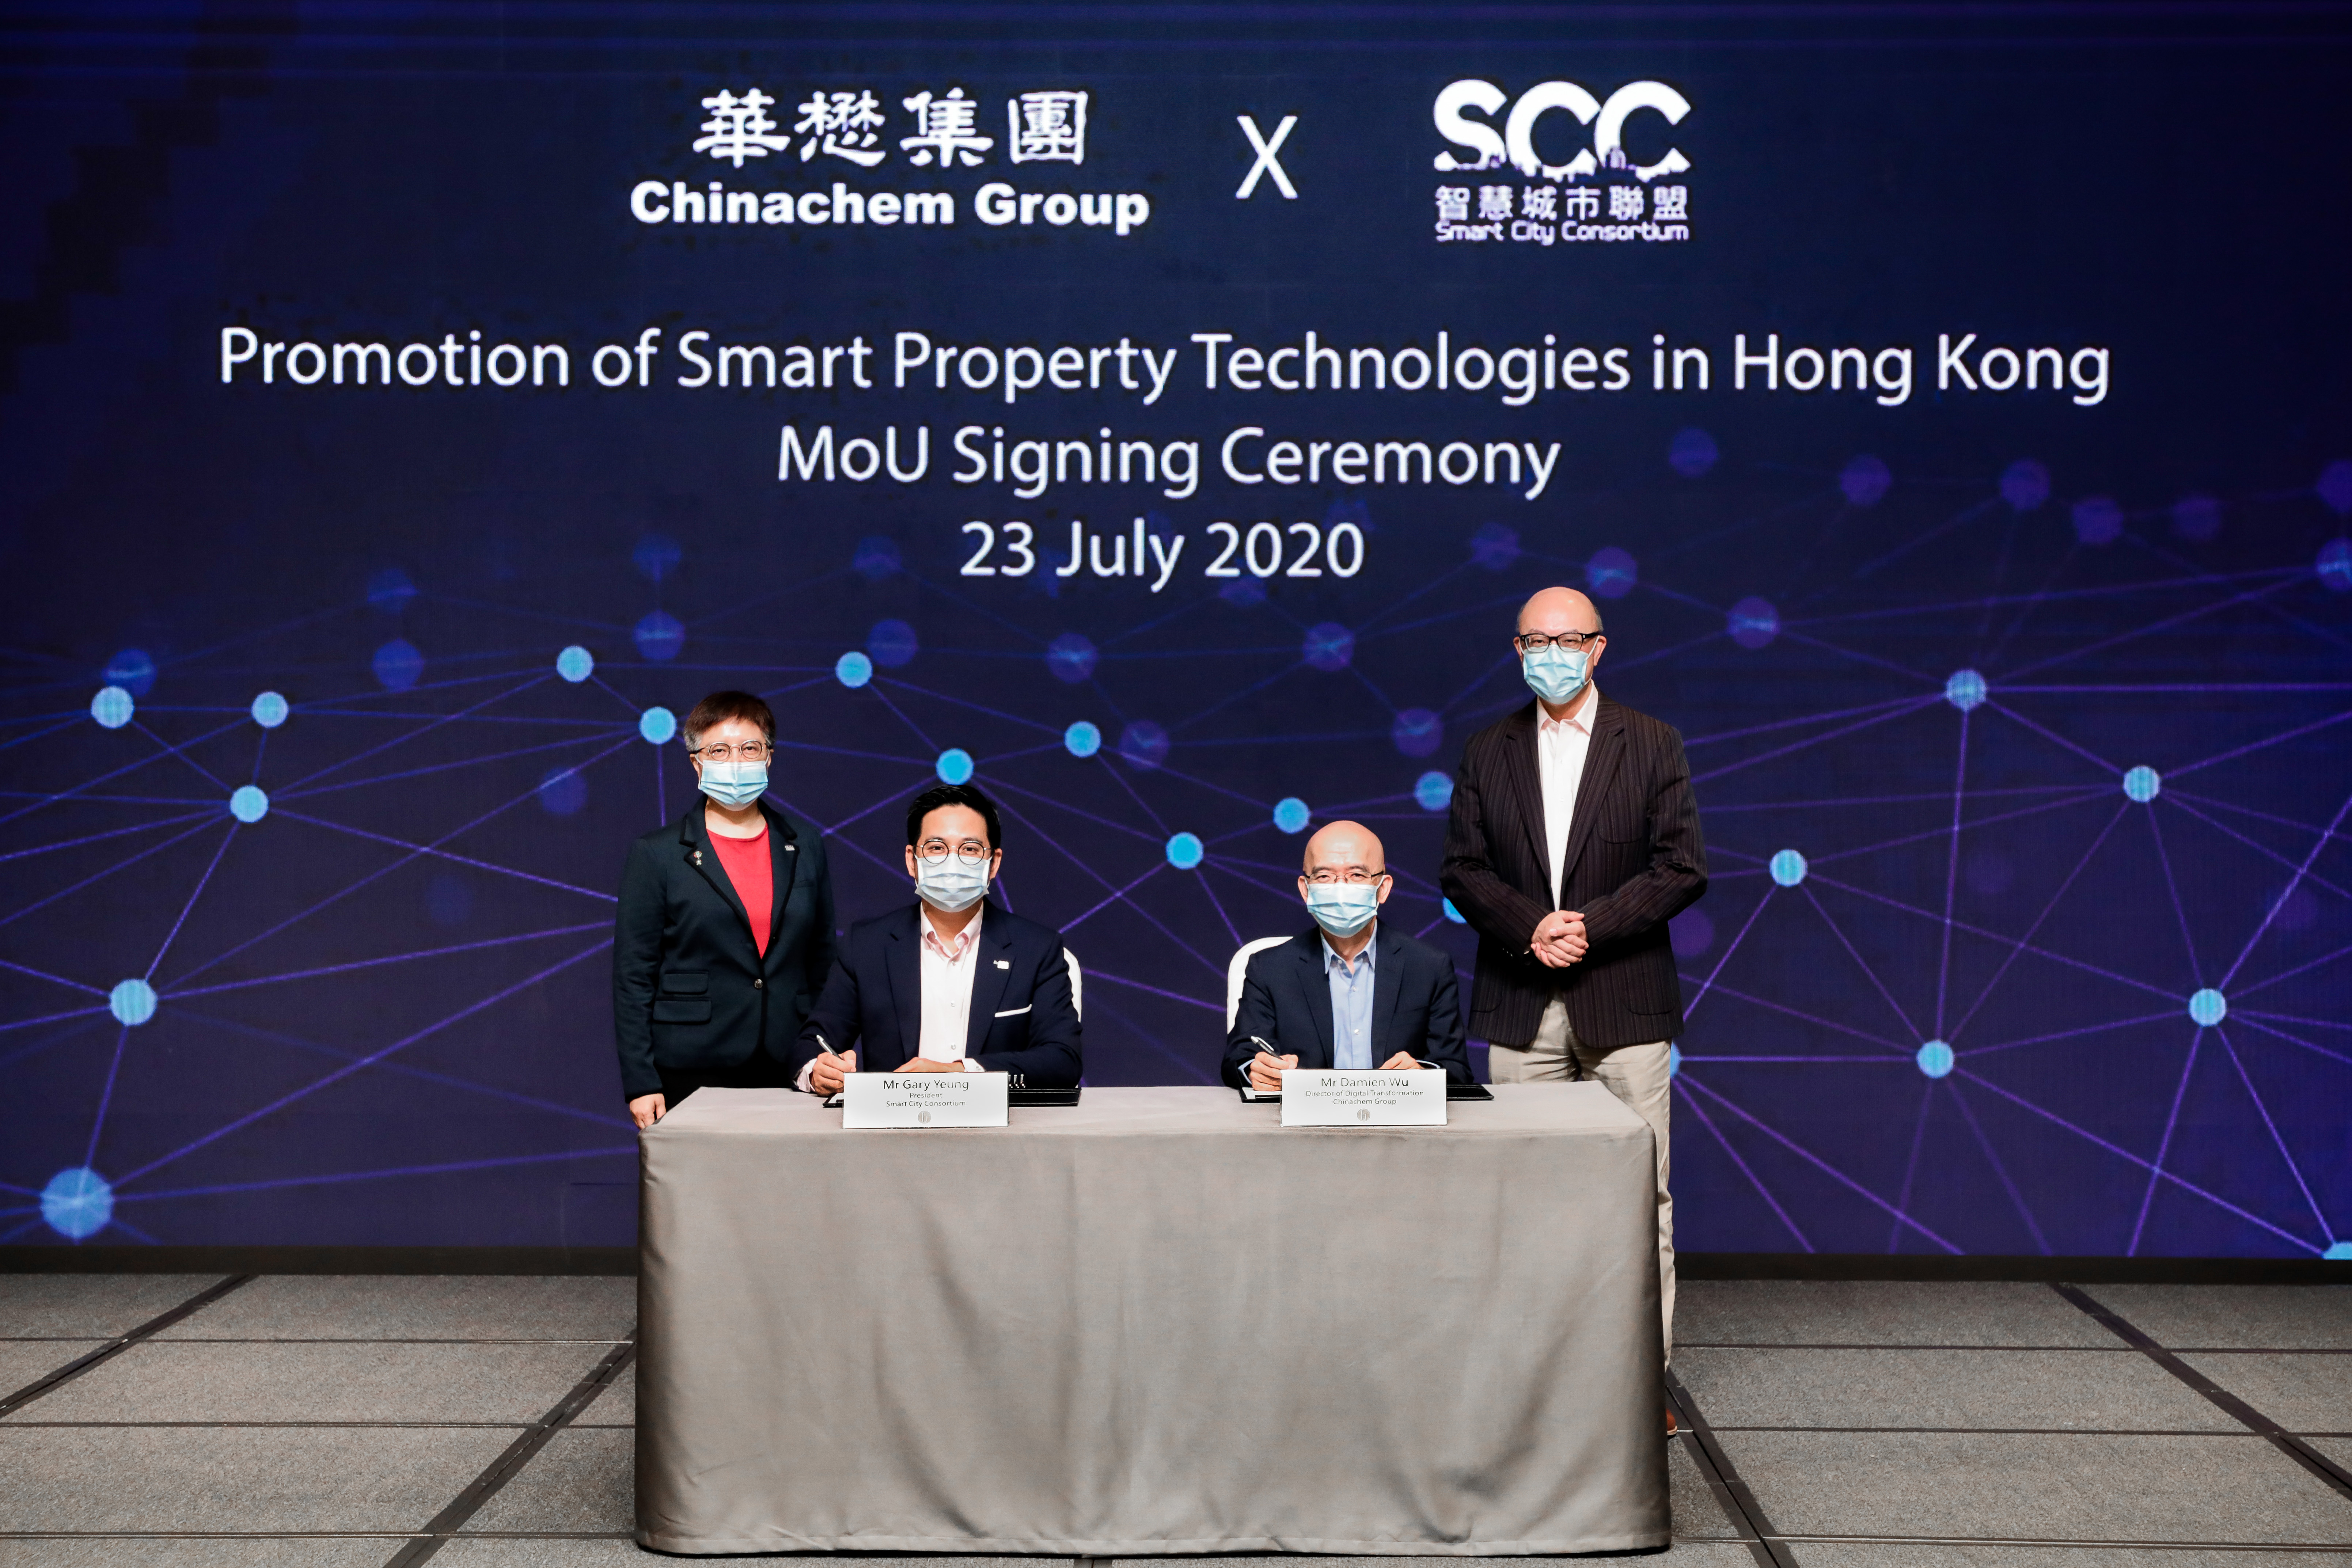 Chinachem and SCC sign MoU to foster smart city development and cybersecurity standards